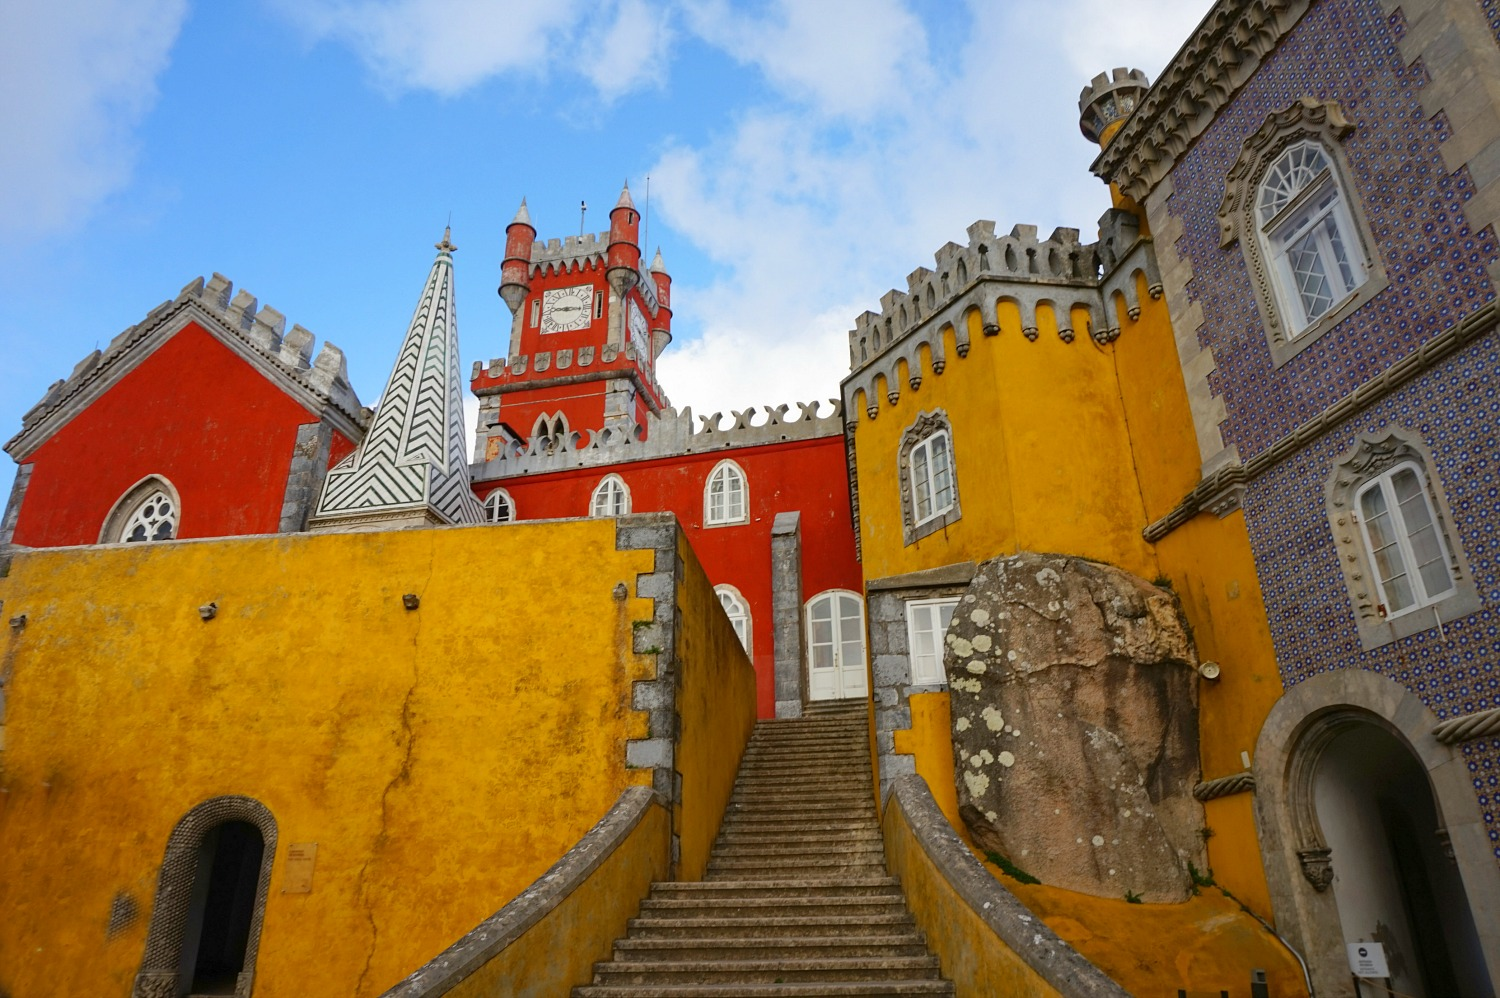 Portugal - one week itinerary. Make Pena Palace in Sintra your number one day trip from Lisbon.